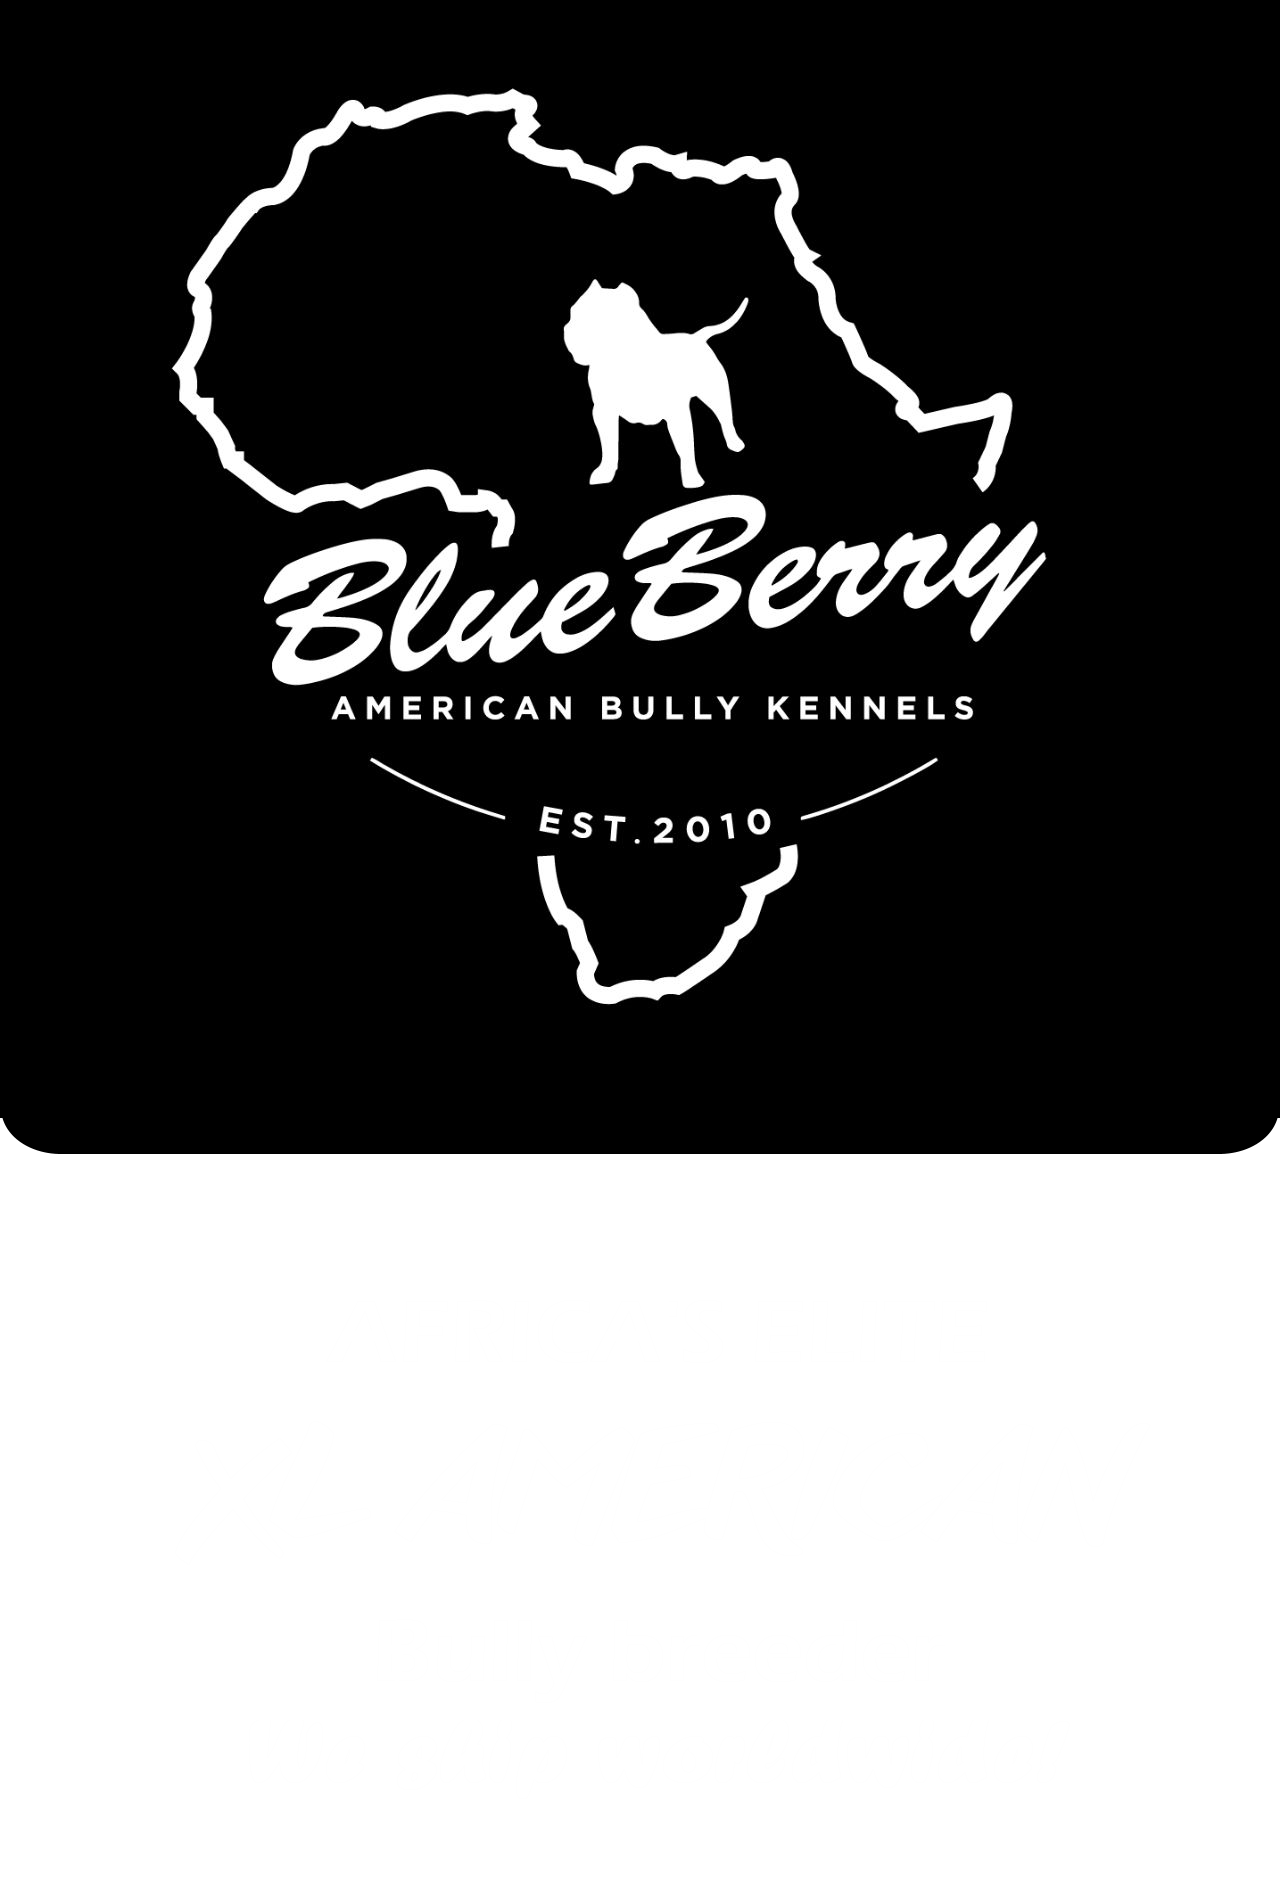 BlueBerry American Bully Kennels